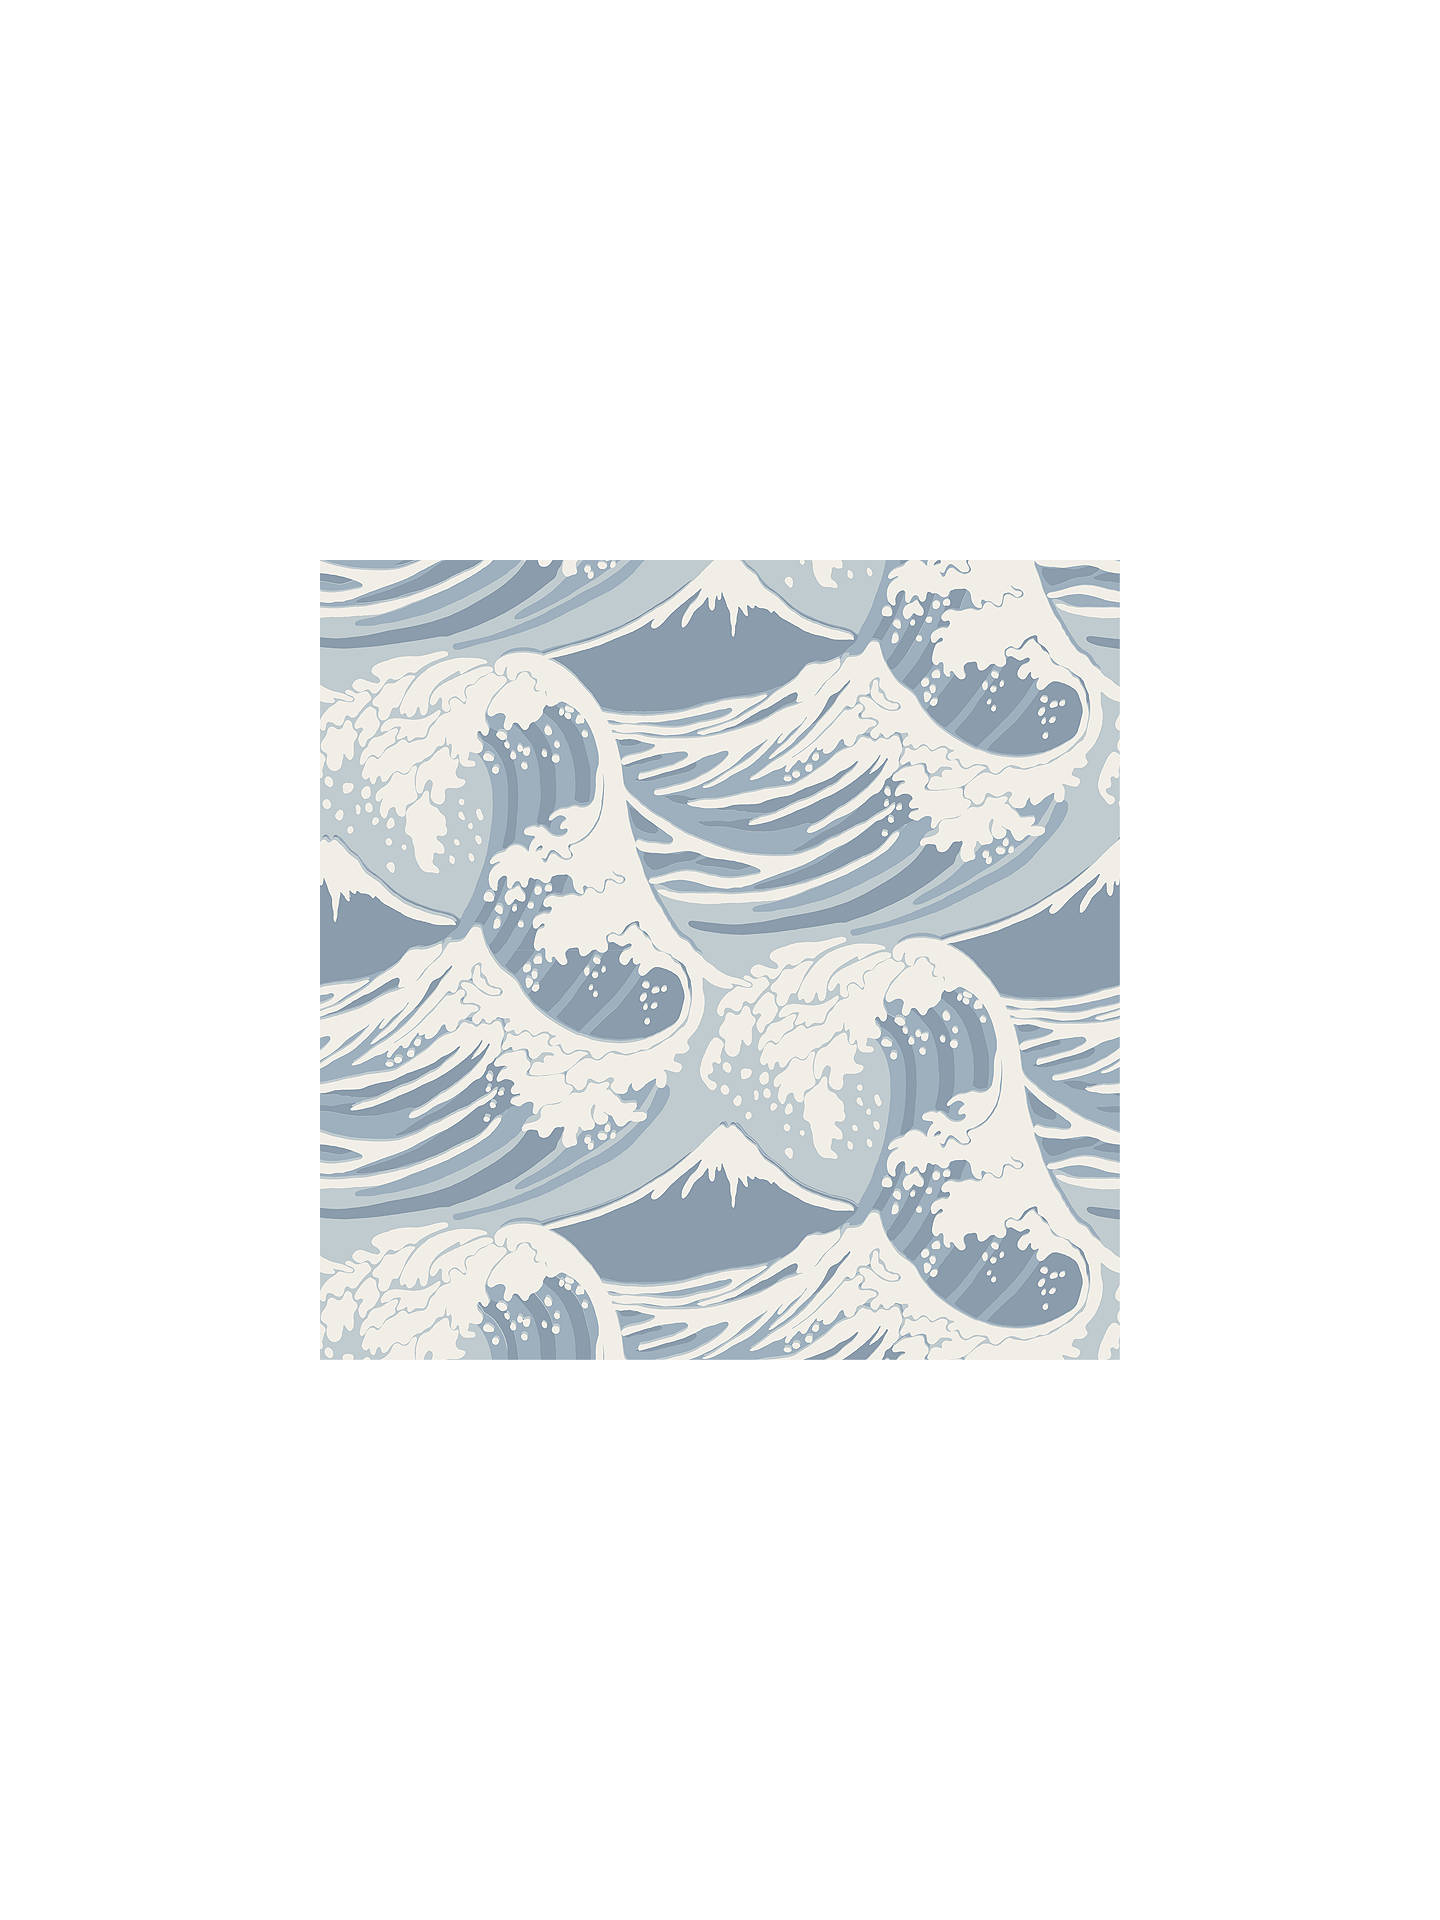 f159d012a34b8 Buy Cole & Son Great Wave Wallpaper, 89/2007 Online at johnlewis.com